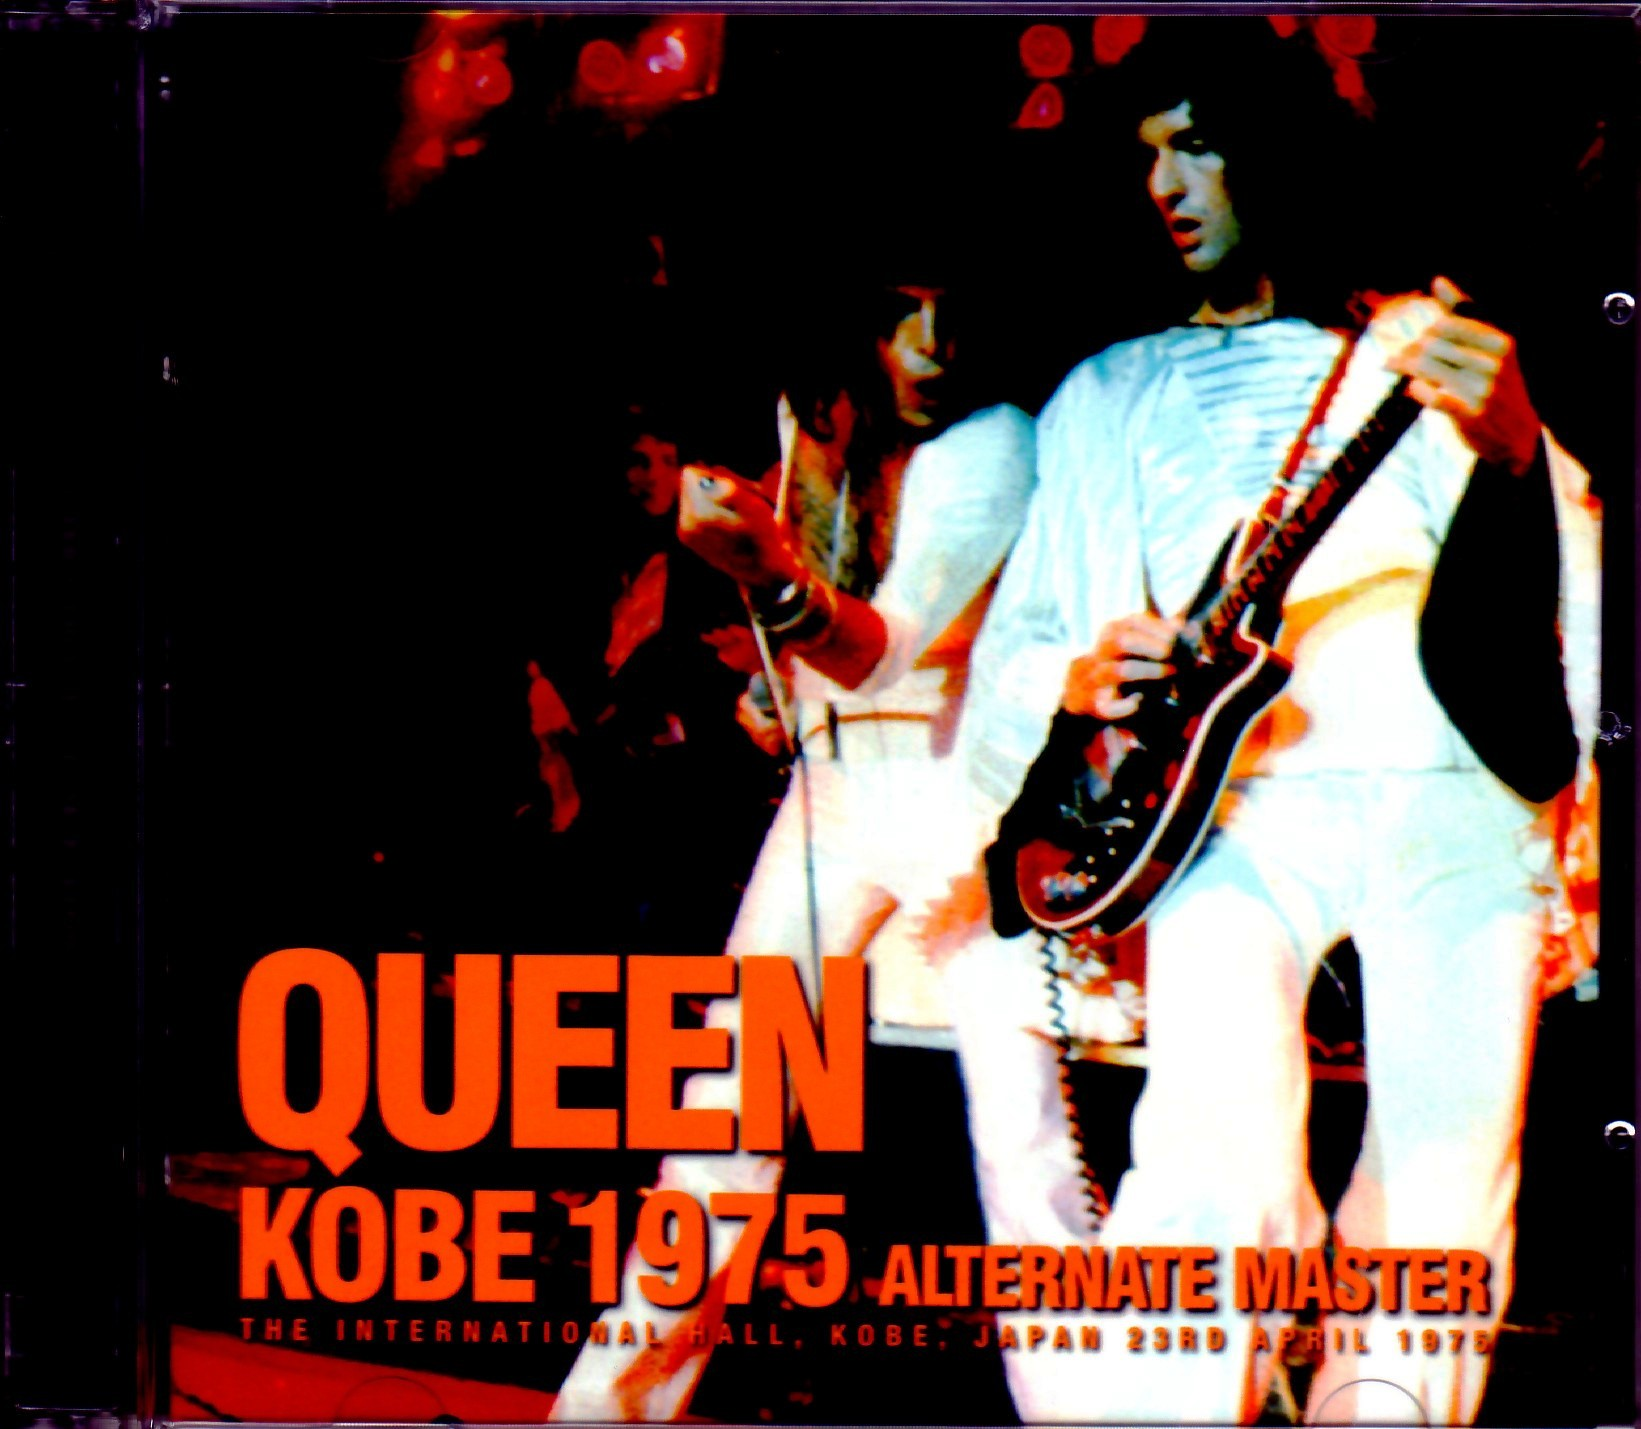 Queen クィーン/Hyogo,Japan 1975 Alternate Master